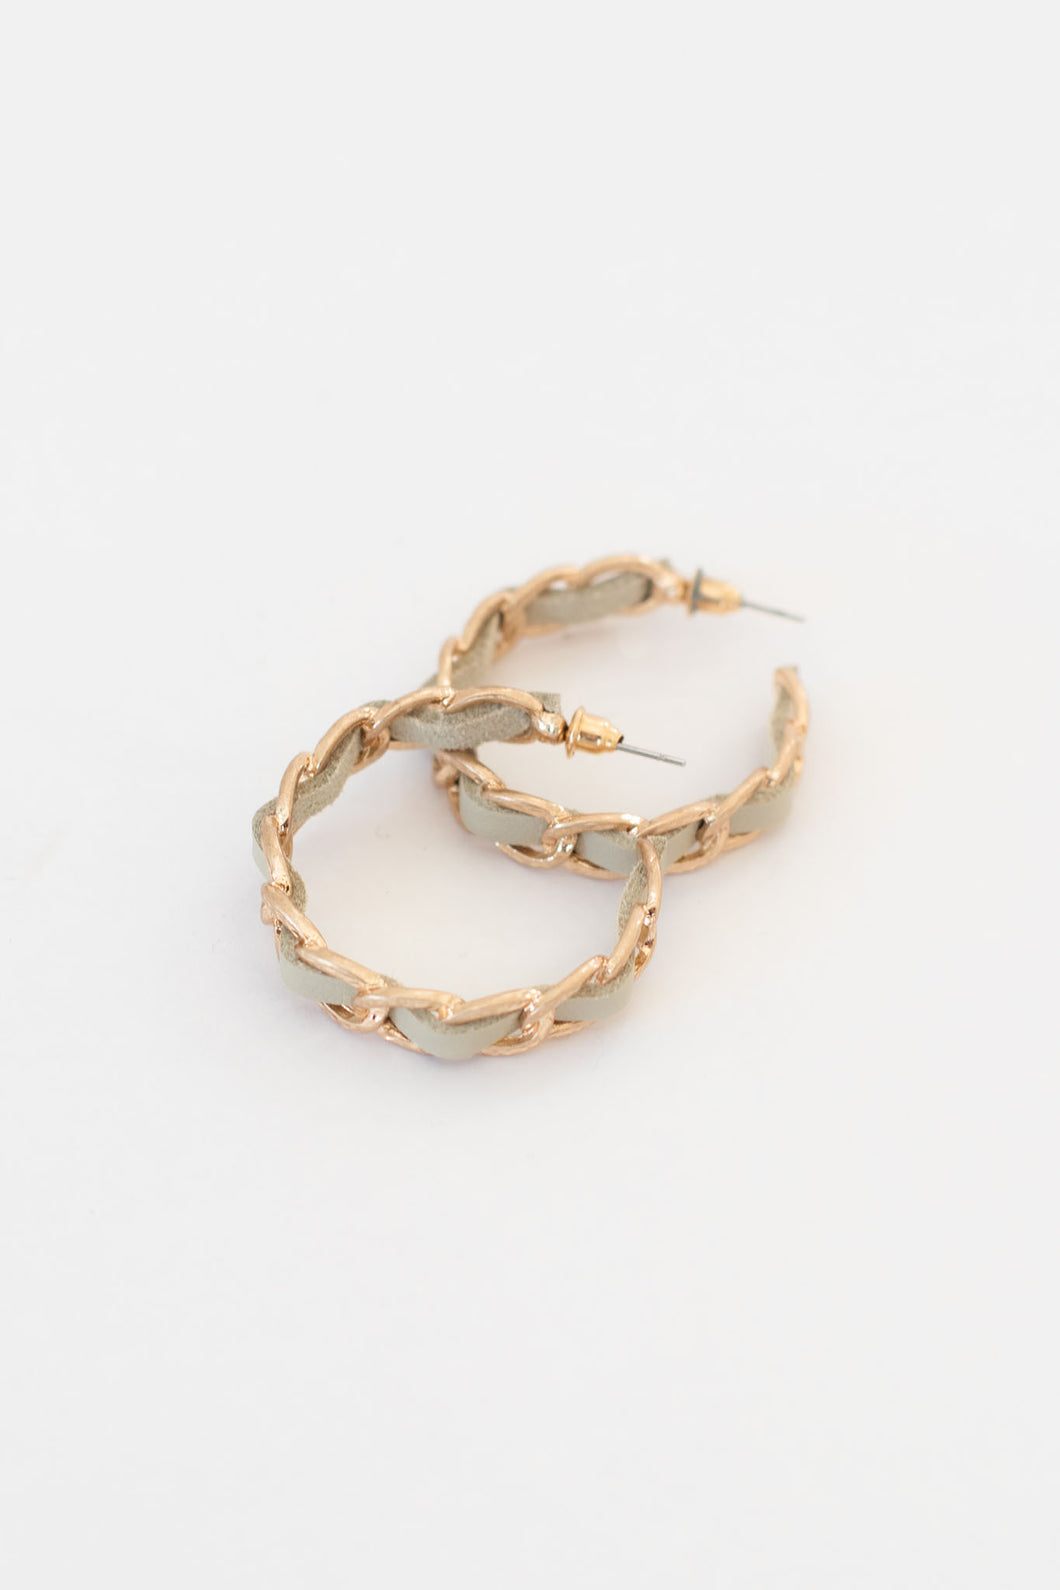 Bradshaw Gold Chain + Faux Leather Hoop - Ivory